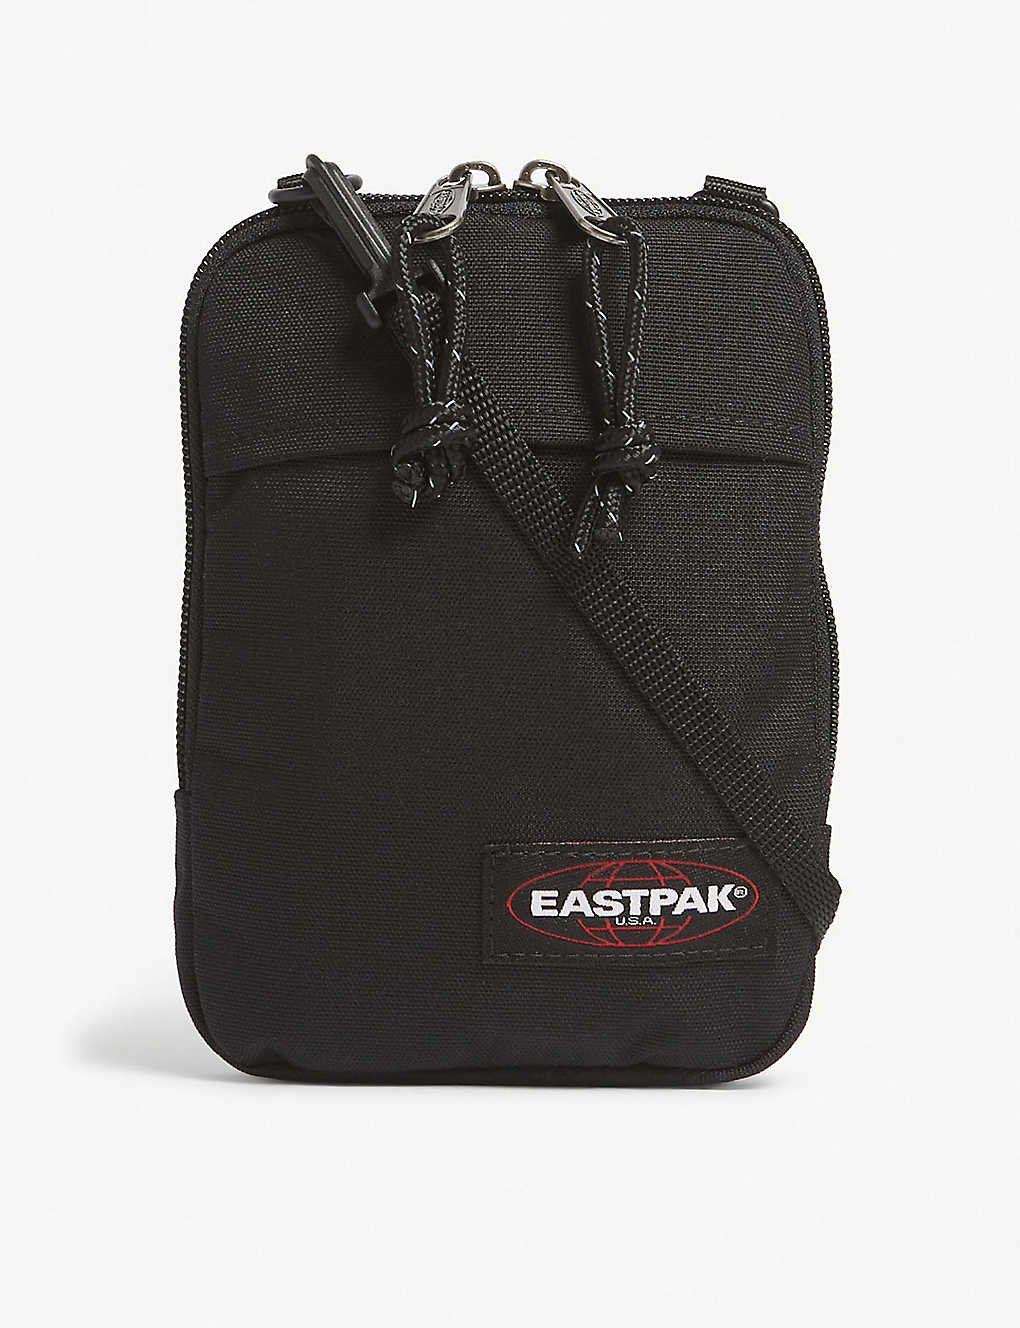 EASTPAK: Authentic Buddy canvas cross-body pouch